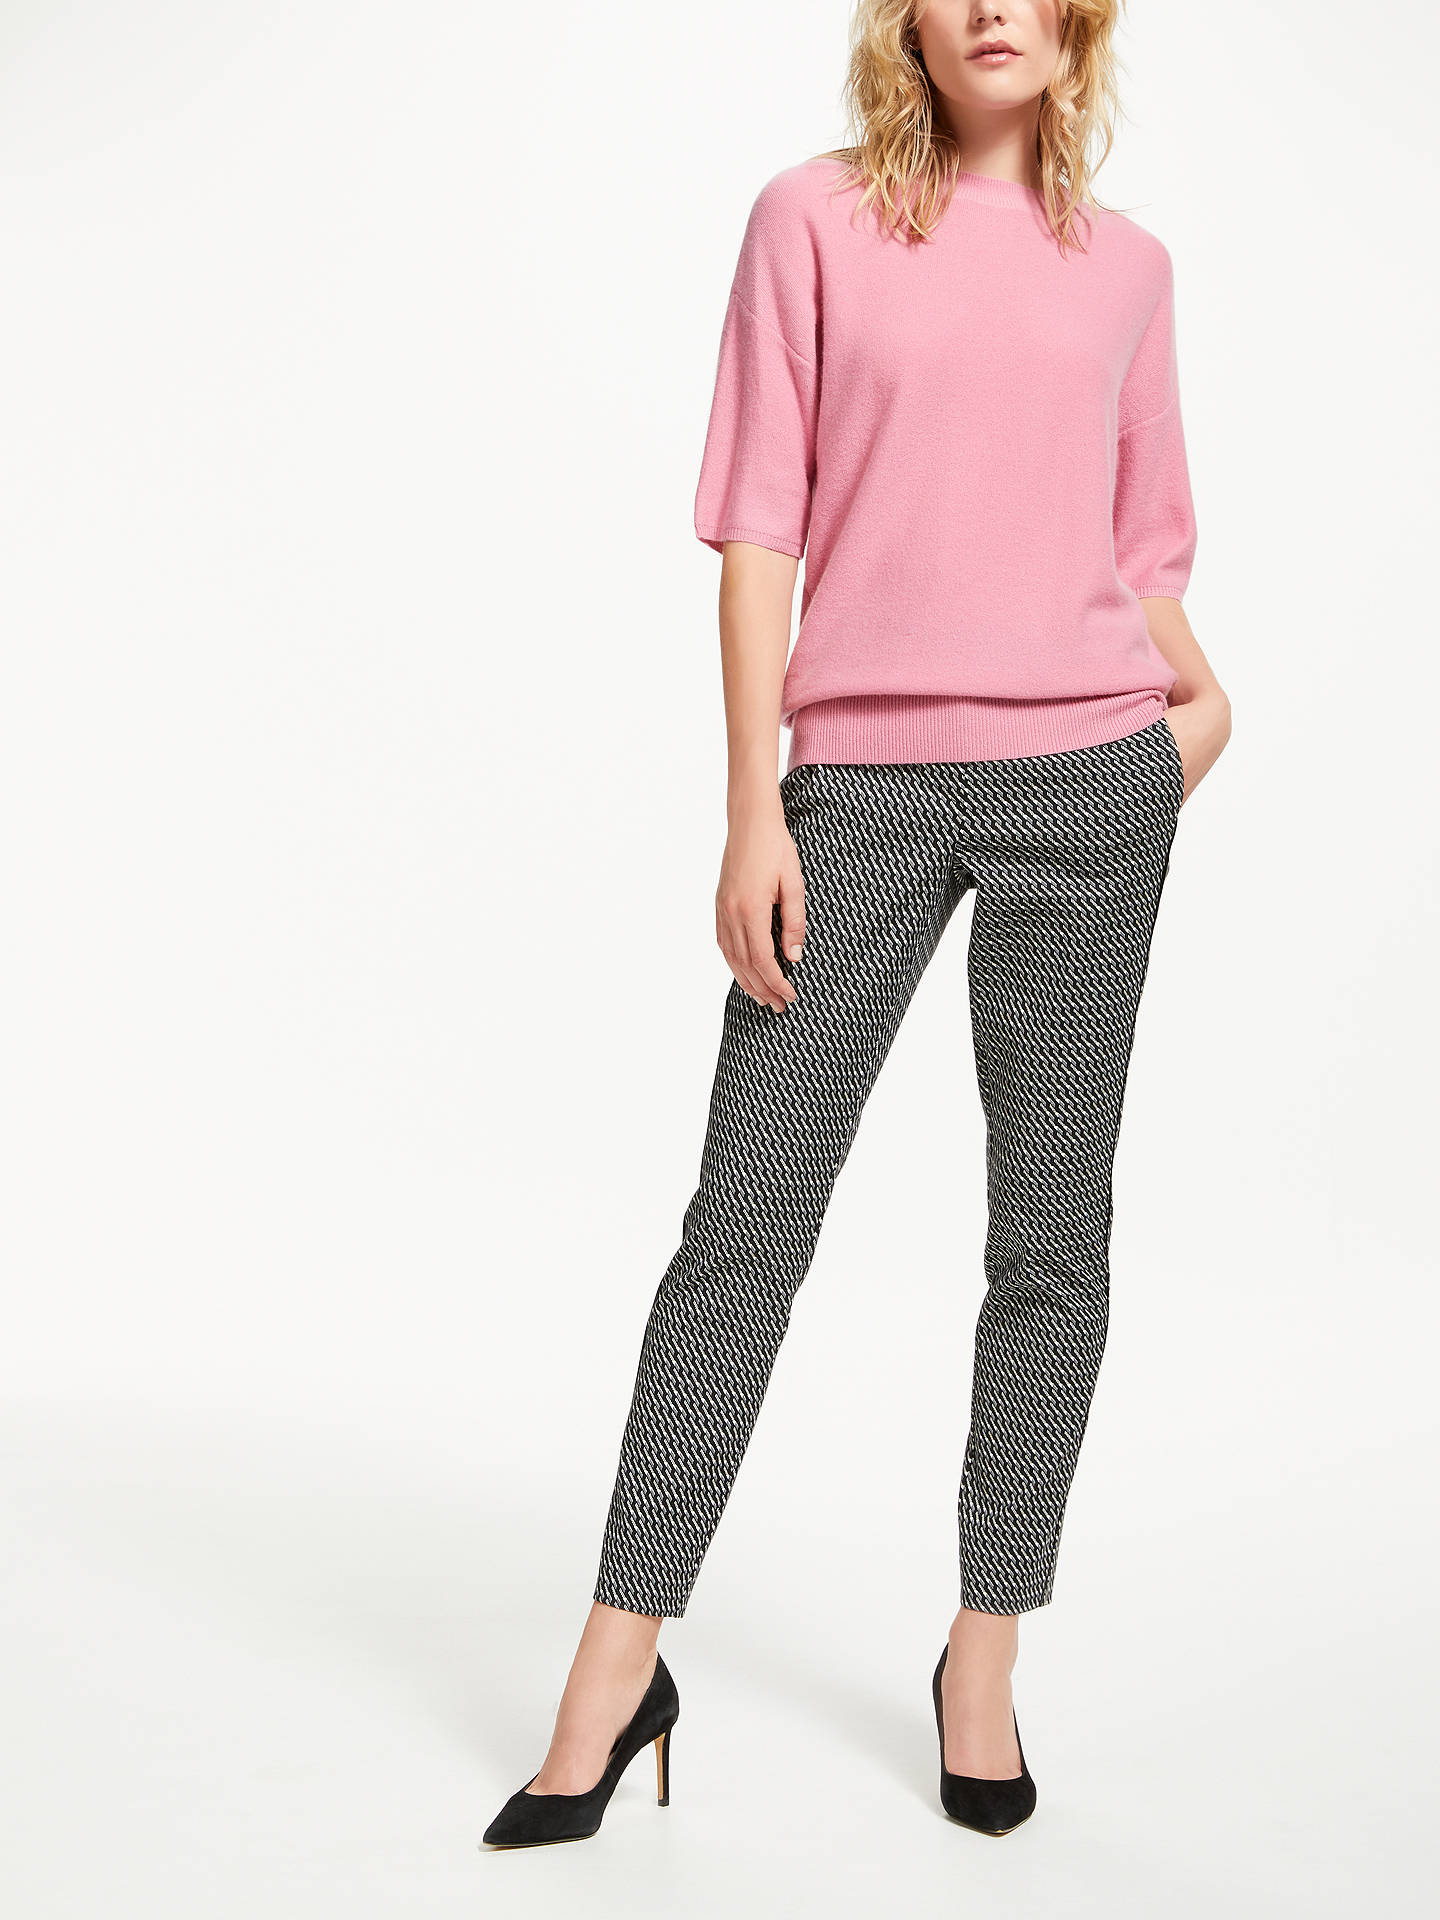 BuyMarella Jacquard Trousers, Cream, 8 Online at johnlewis.com